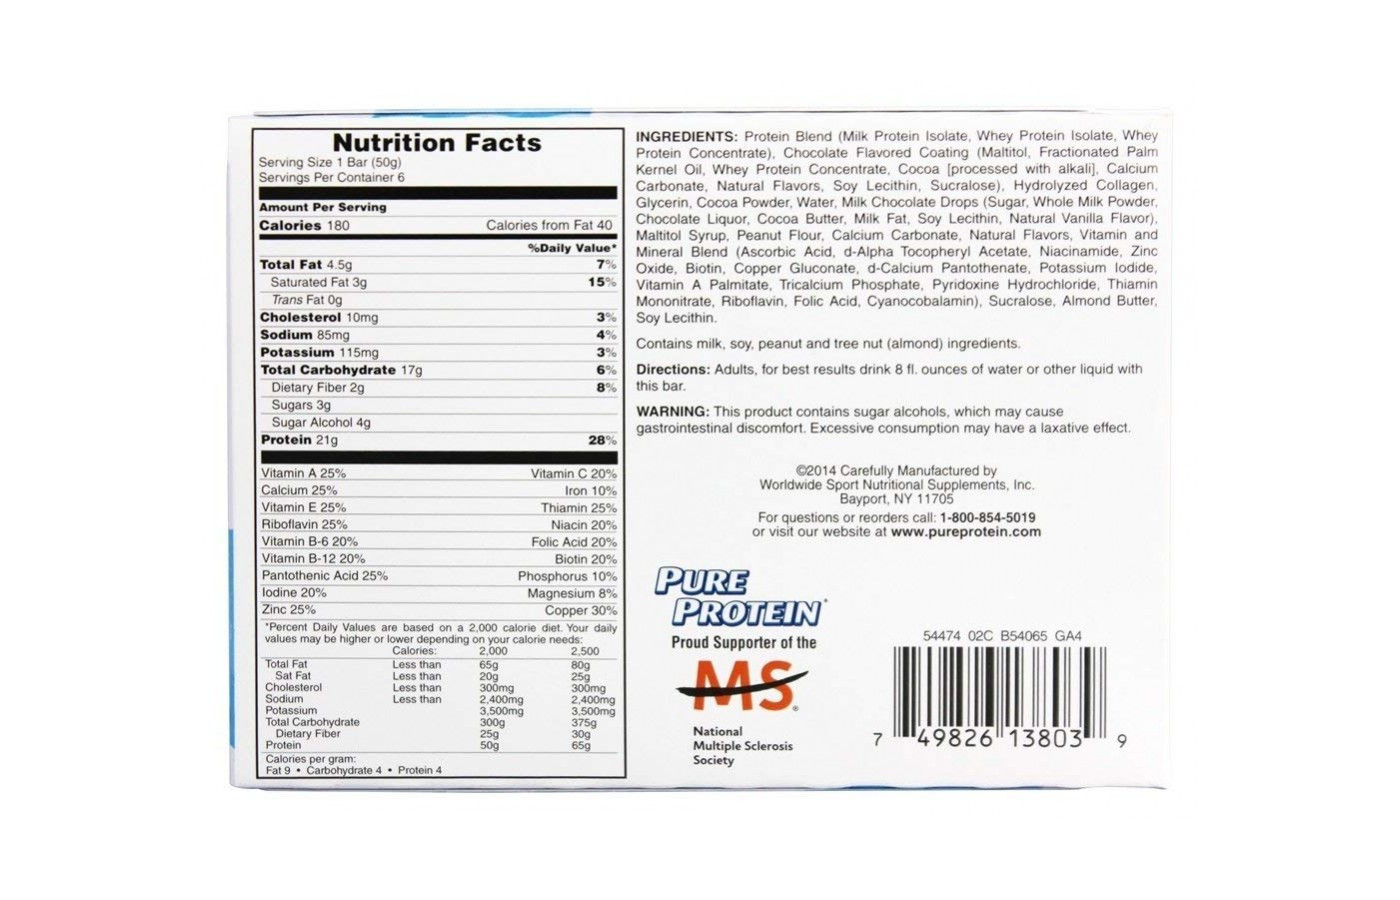 Pure Protein Nutrition Facts